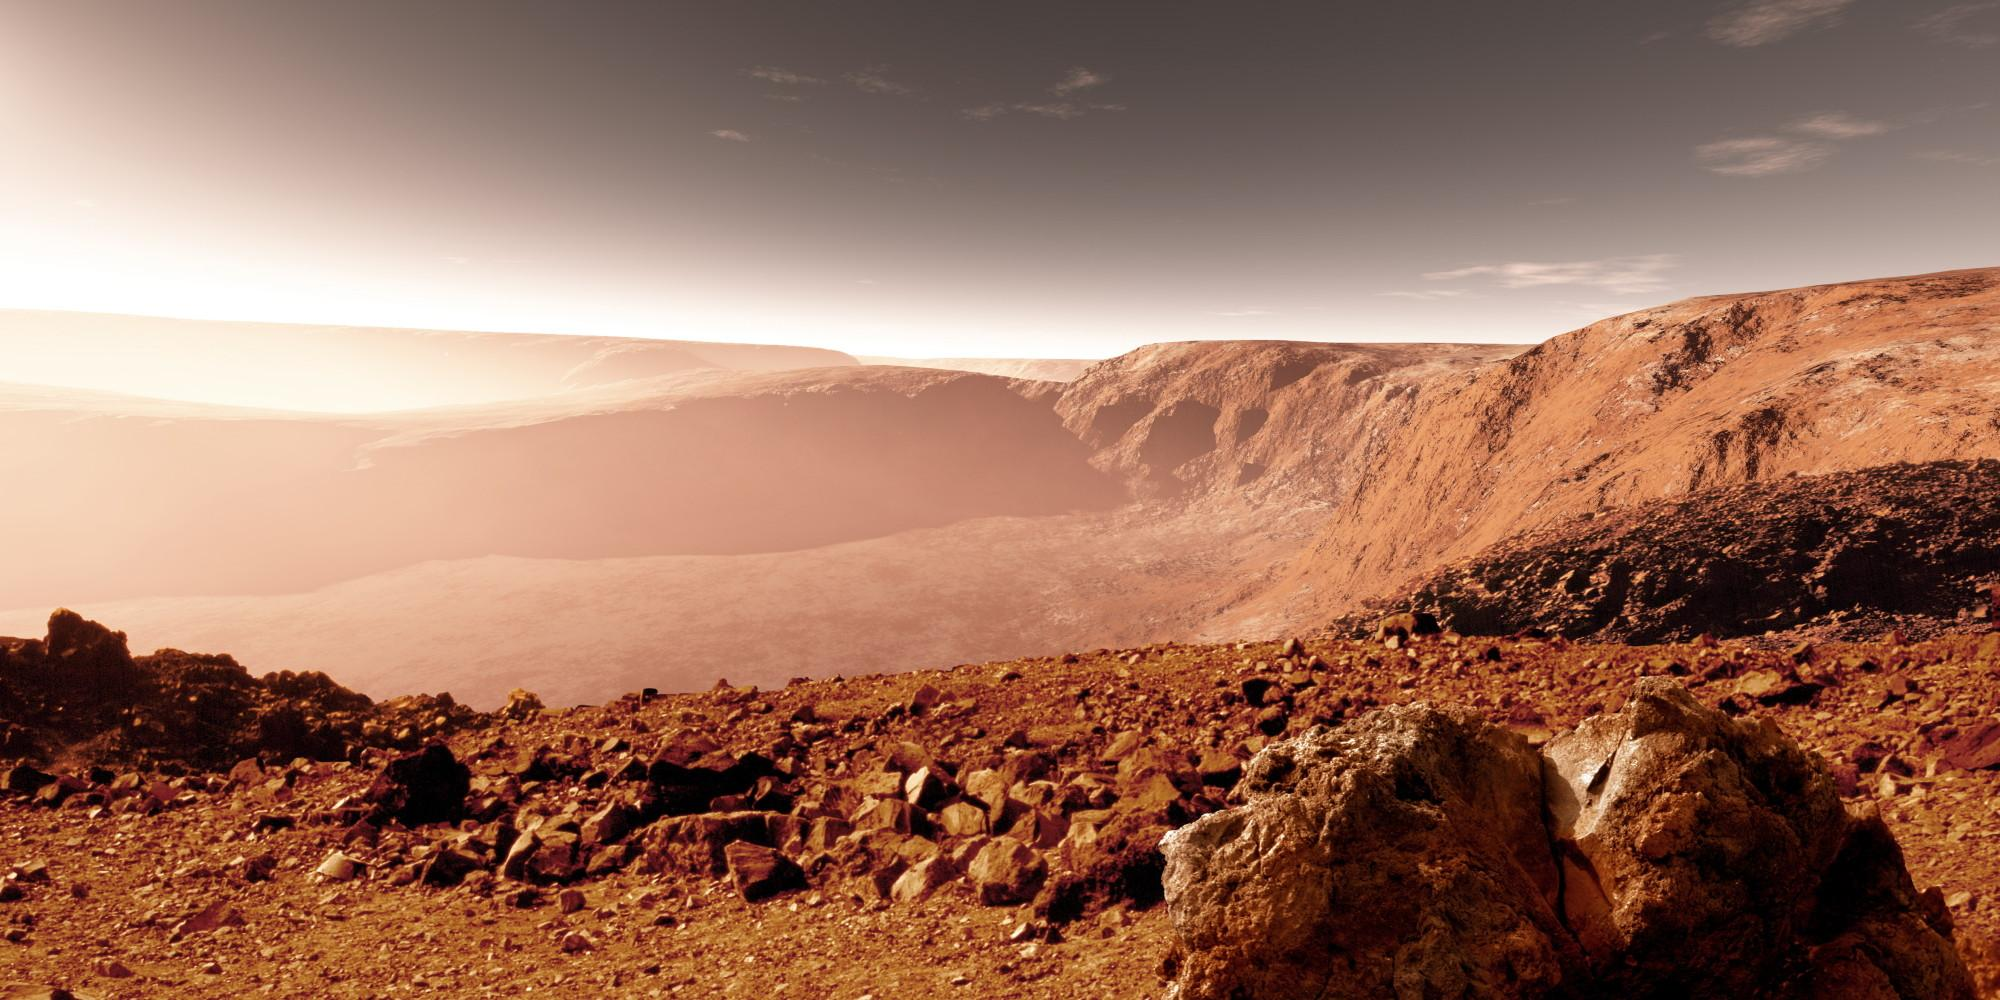 Solar Powered 3D Printers on Mars? Researchers Successfully Test Feasibility of Printing Surgical Tools on Red Planet